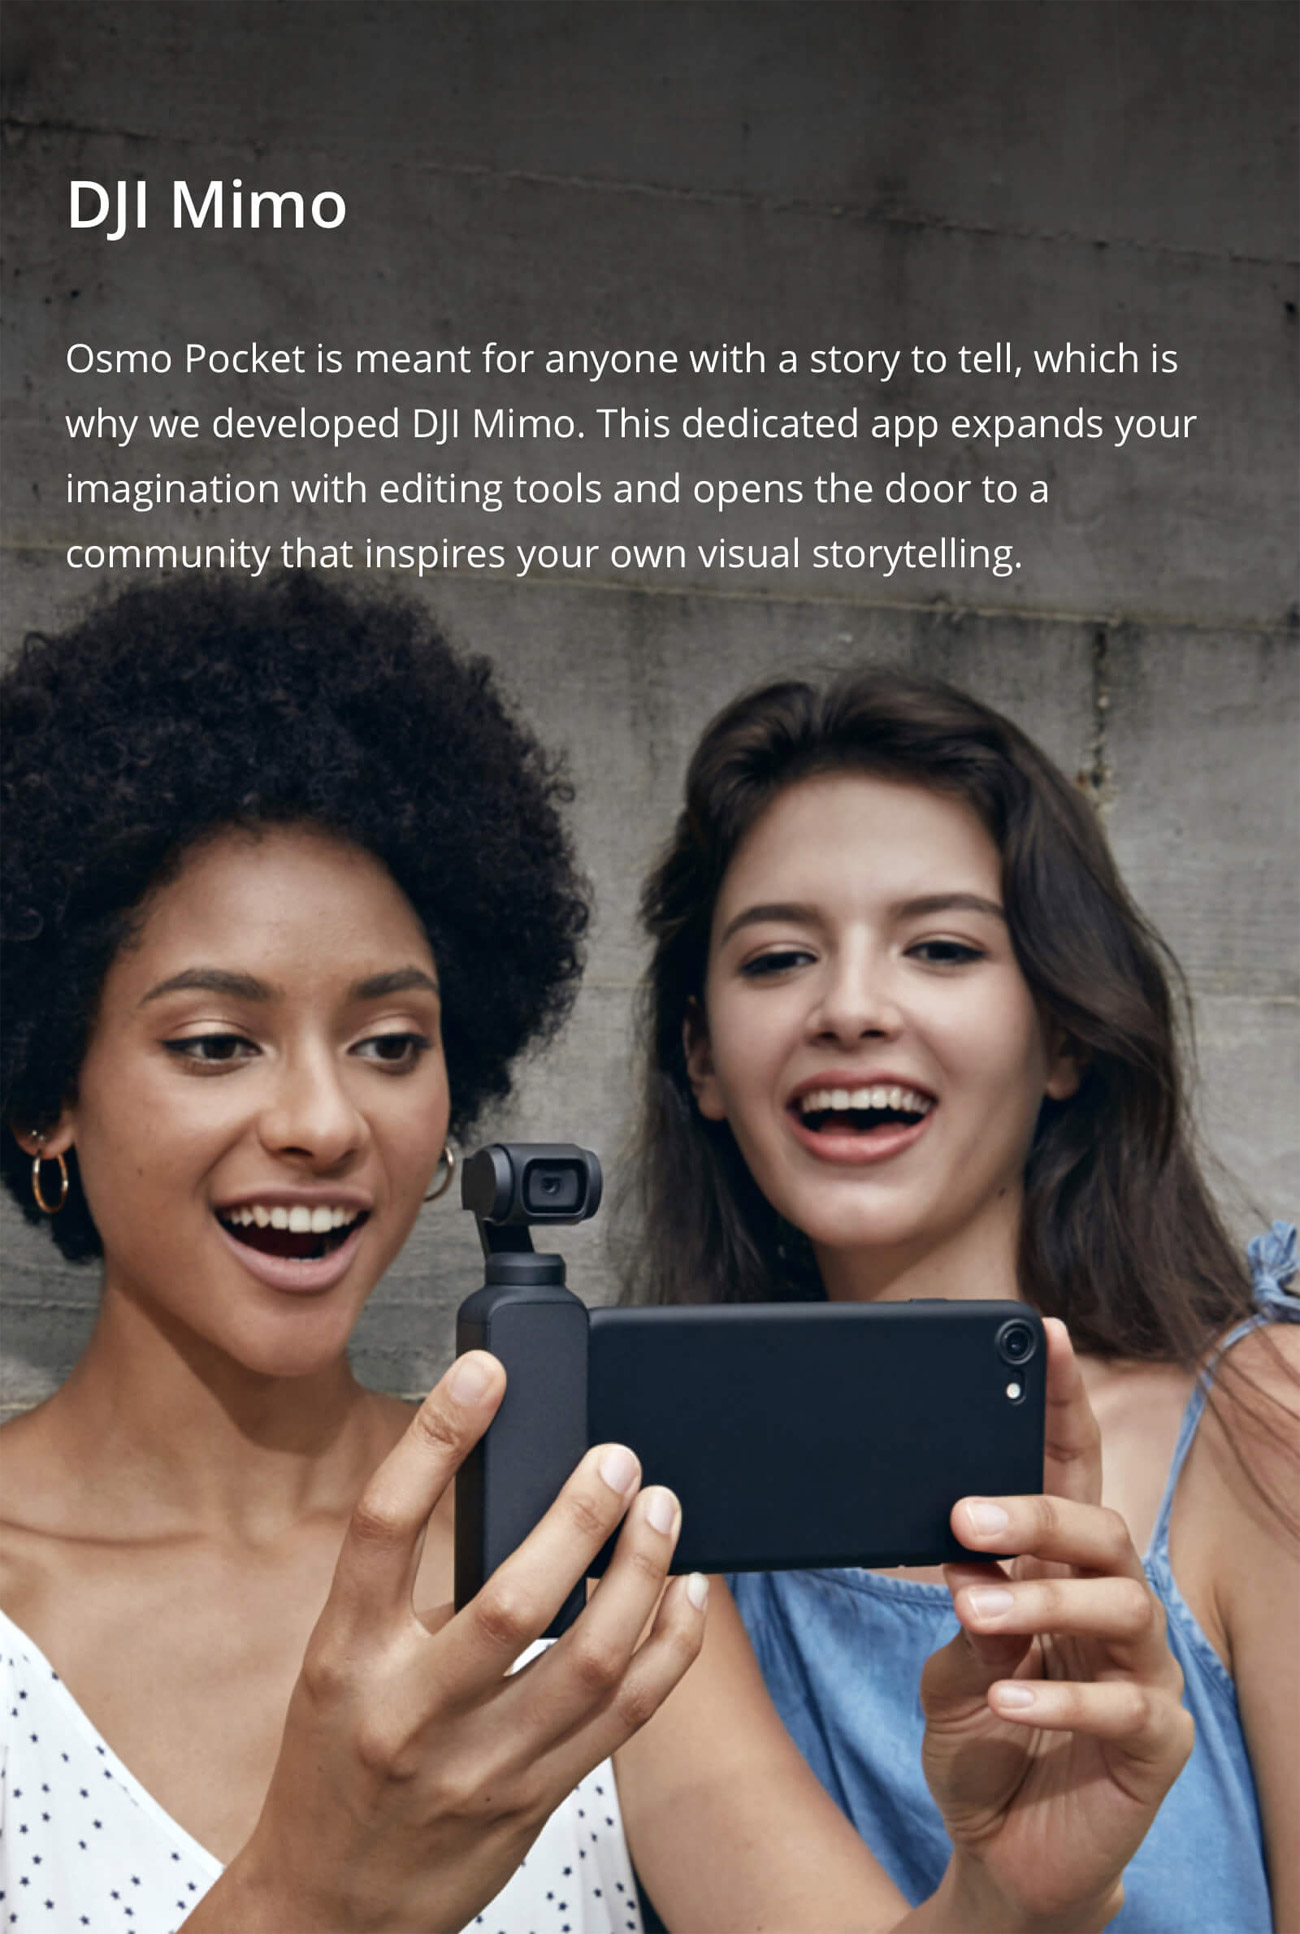 DJI Mimo banner with two women, one holds the Osmo Pocket connected to her smartphone. There is text that reads: Osmo Pocket is meant for anyone with a story to tell, which is why we developed DJI Mimo. This dedicated app expands your imagination with editing tools and opens the door to a community that inspires your own visual storytelling.